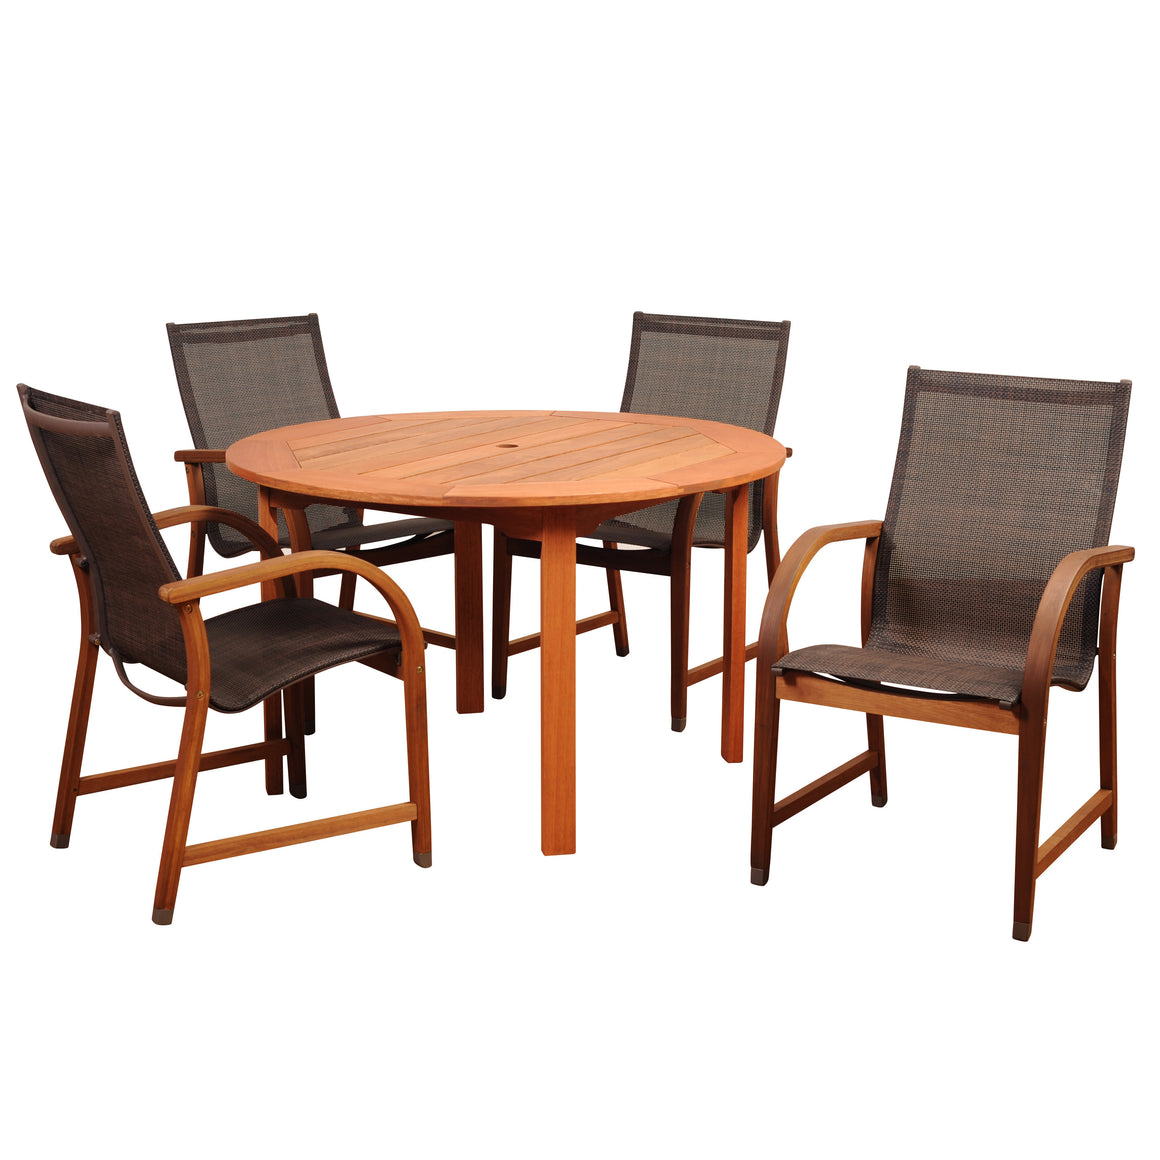 Amazonia Bahamas 5 Piece Ecualyptus Round Dining Set , International Home Miami- grayburd